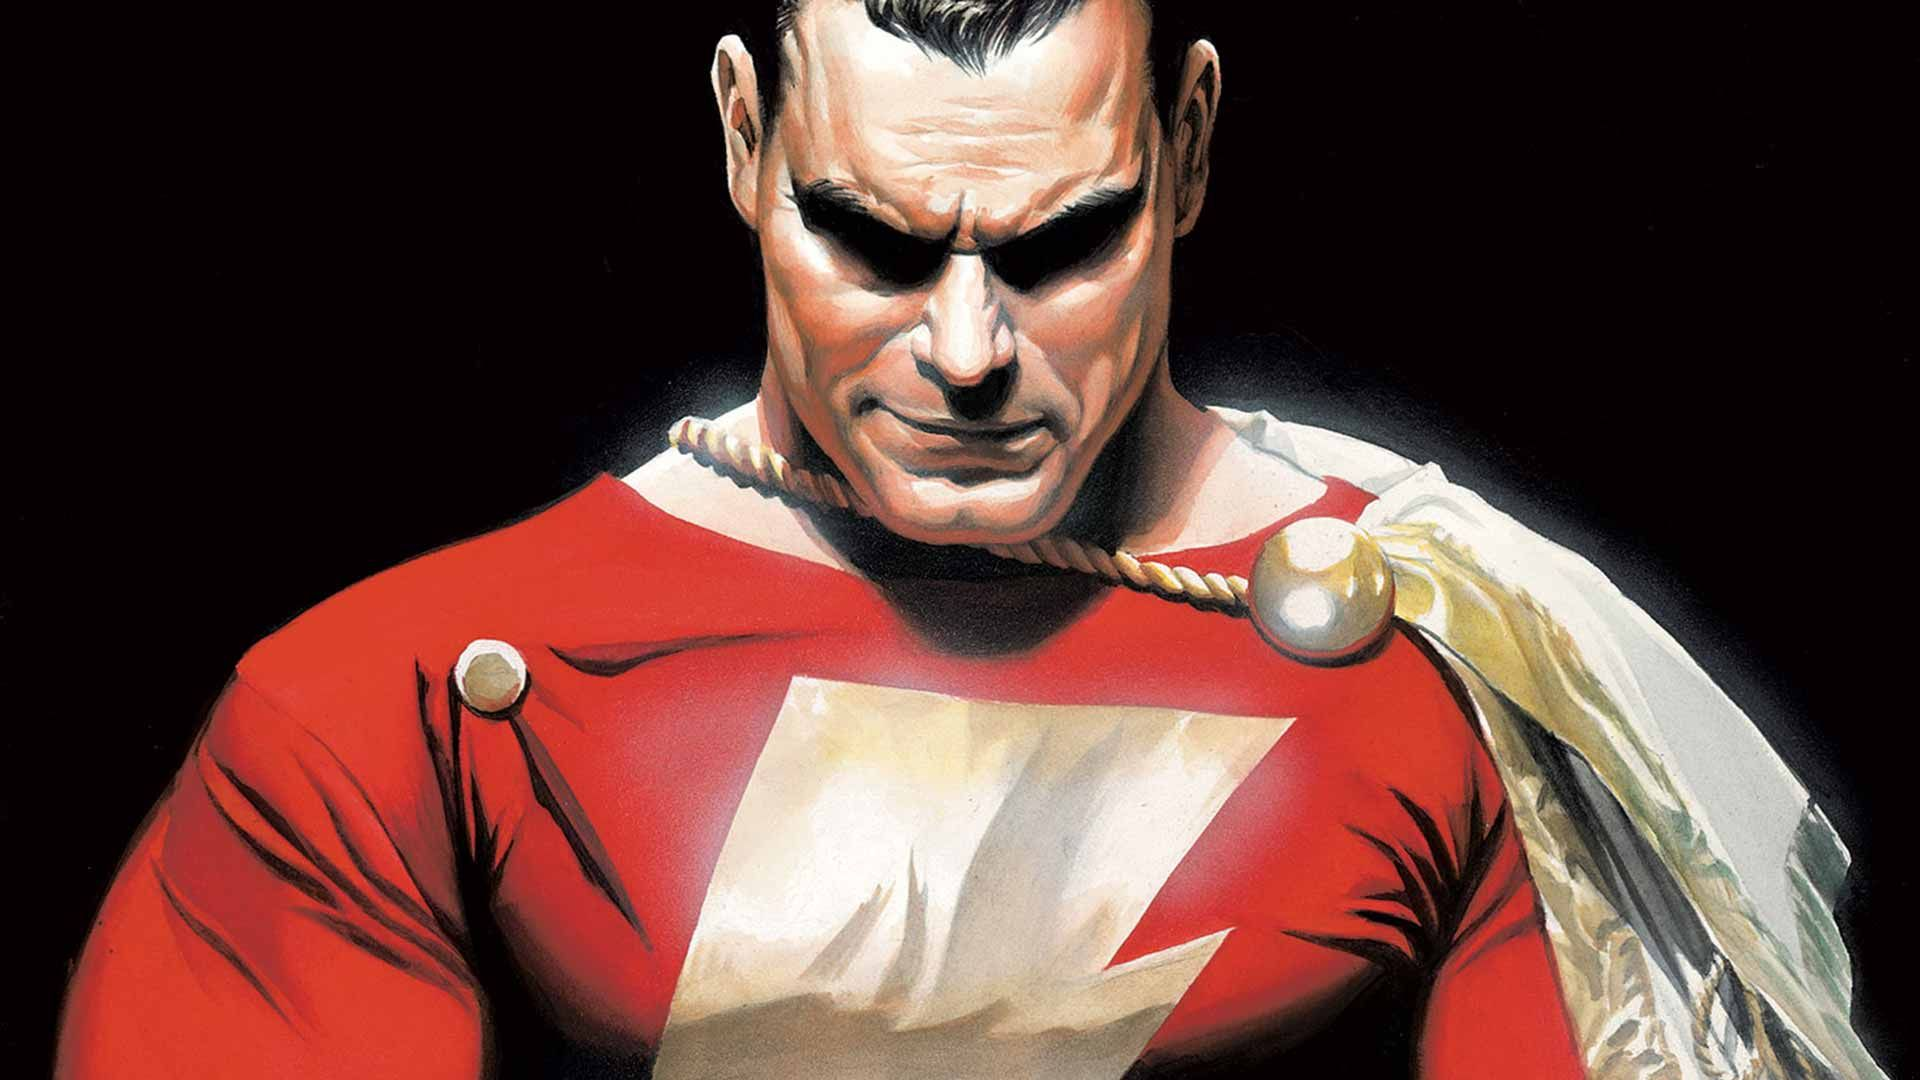 Movie Poster 2019: Exclusive: How 'Shazam!' Movie Will Build On Warner Bros